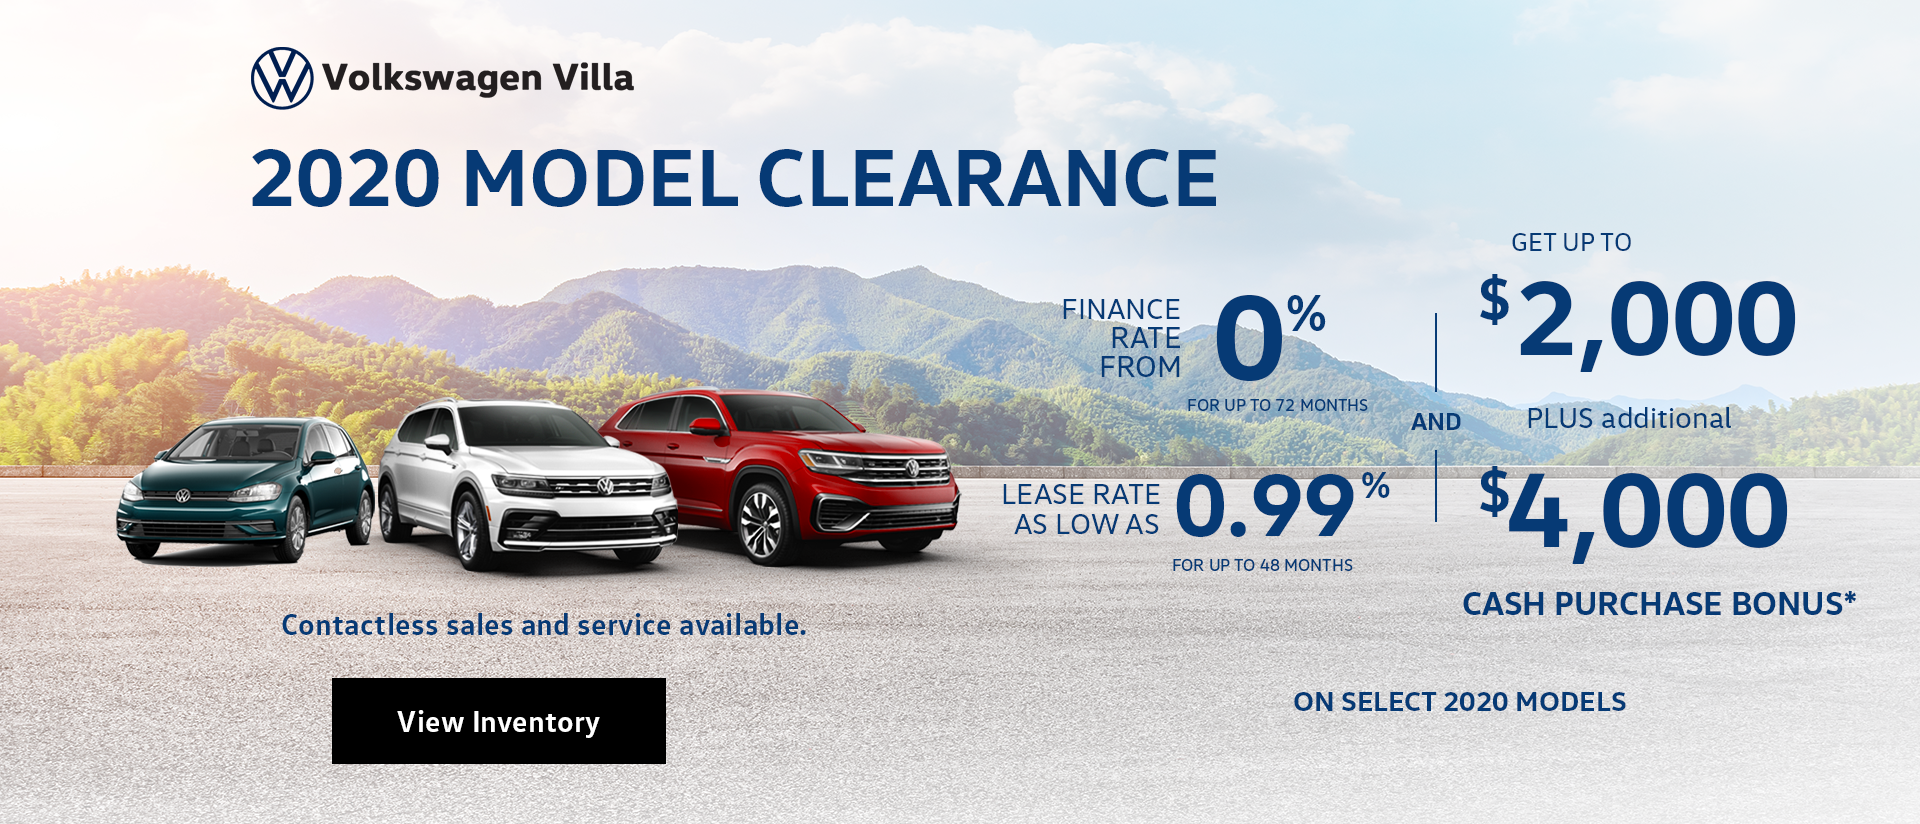 Vw Villa 2020 Clearance Website Banner V1